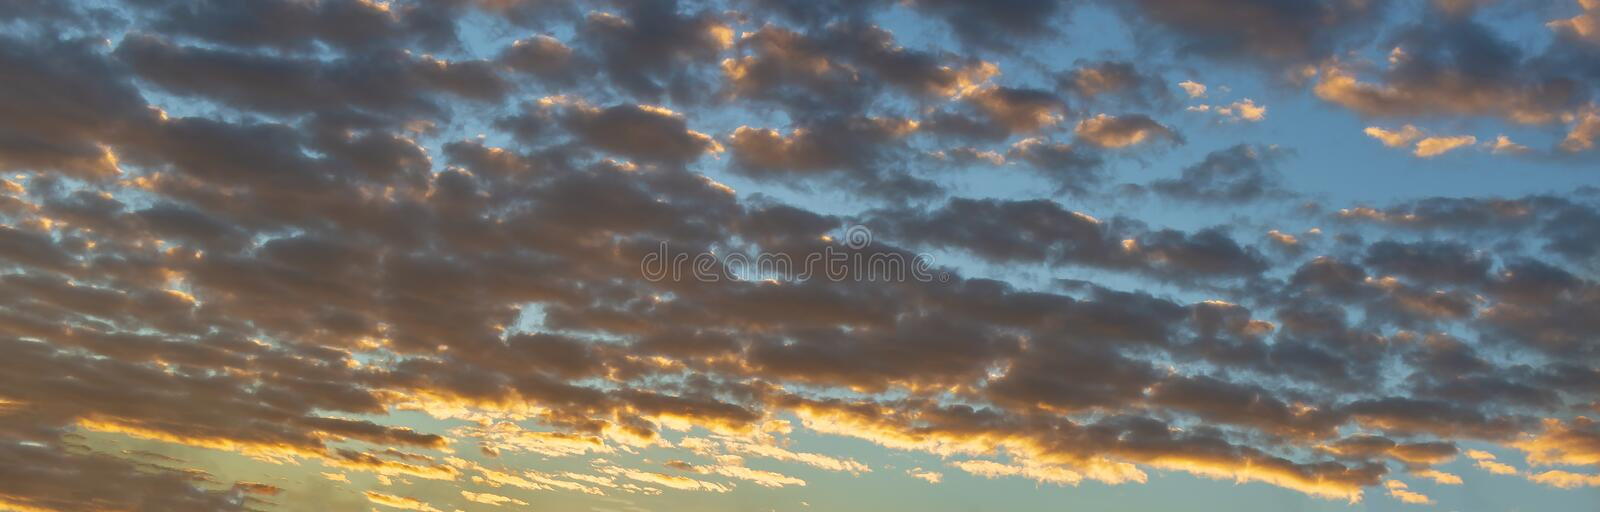 Panorama or panoramic dramatic blue sky and warm light clouds at sunrise or sunset on morning or evening time for background or ba stock photo